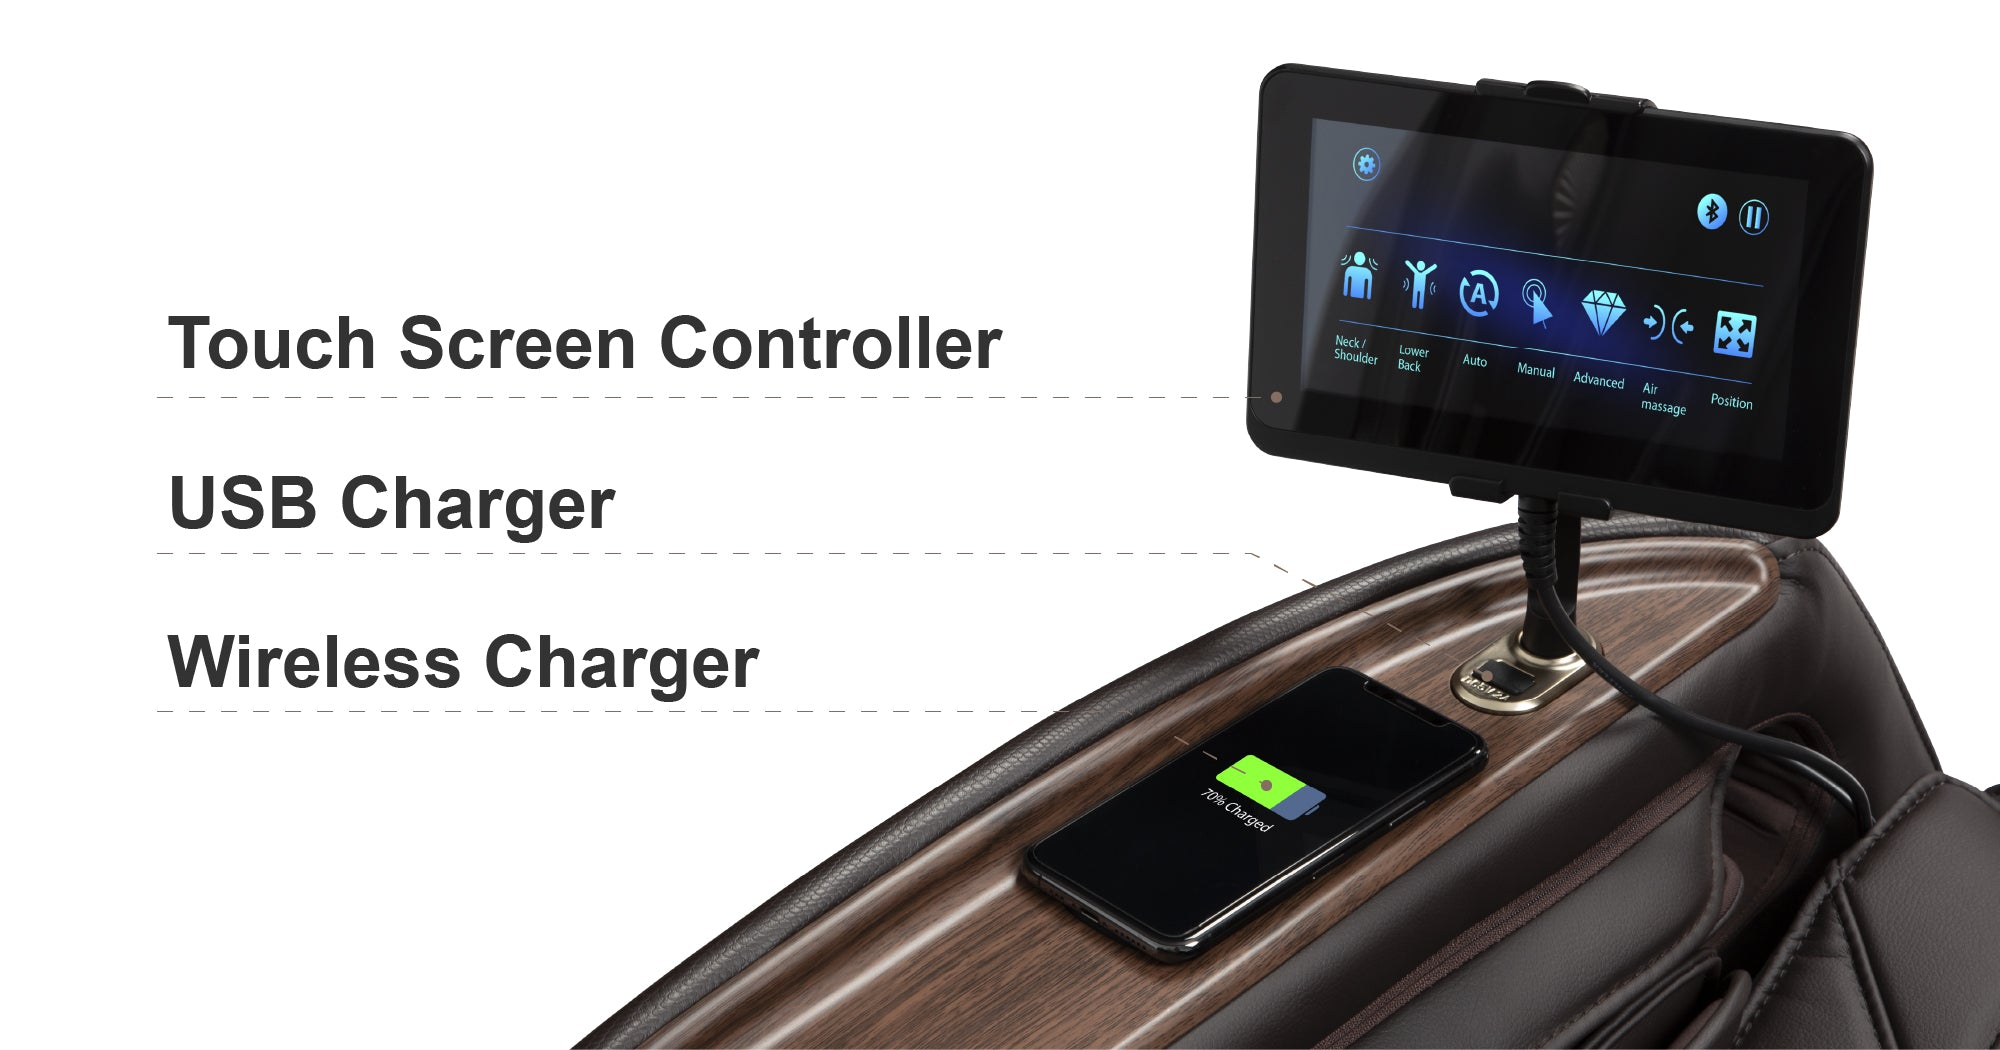 Touch Screen Controller, USB Charger, Wireless Charger